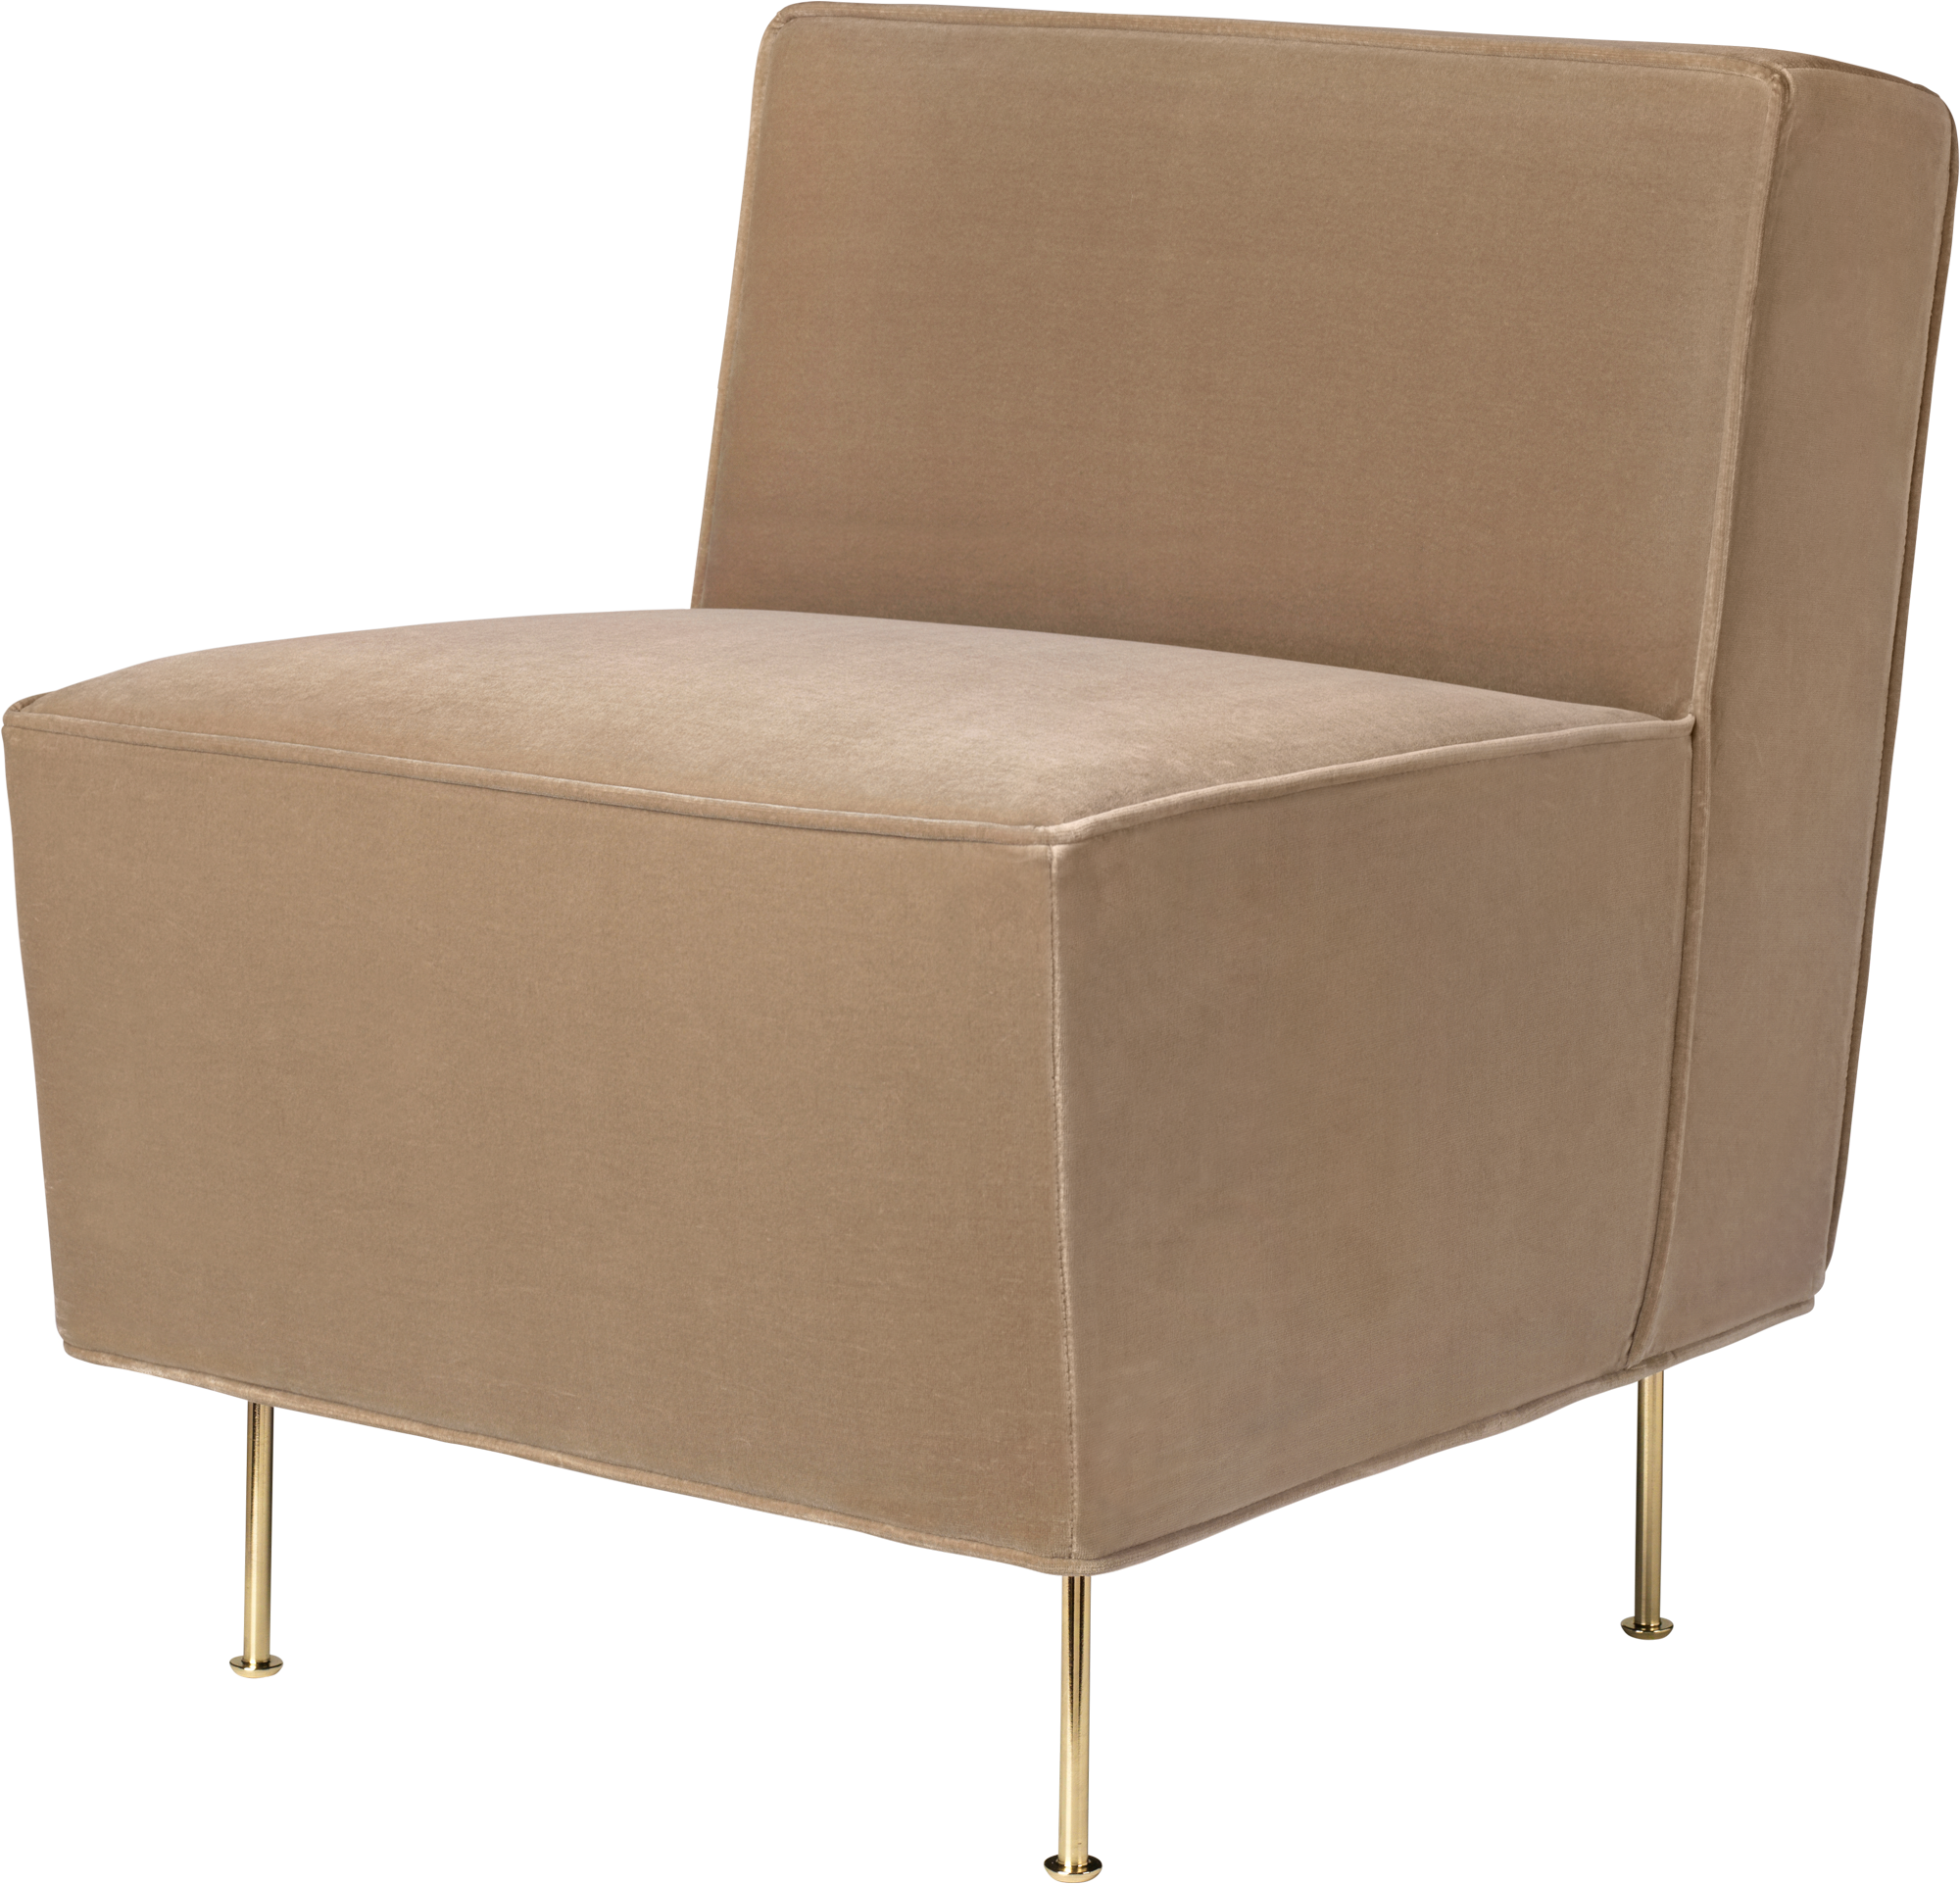 Copy of Modern Line Dining Lounge Chair